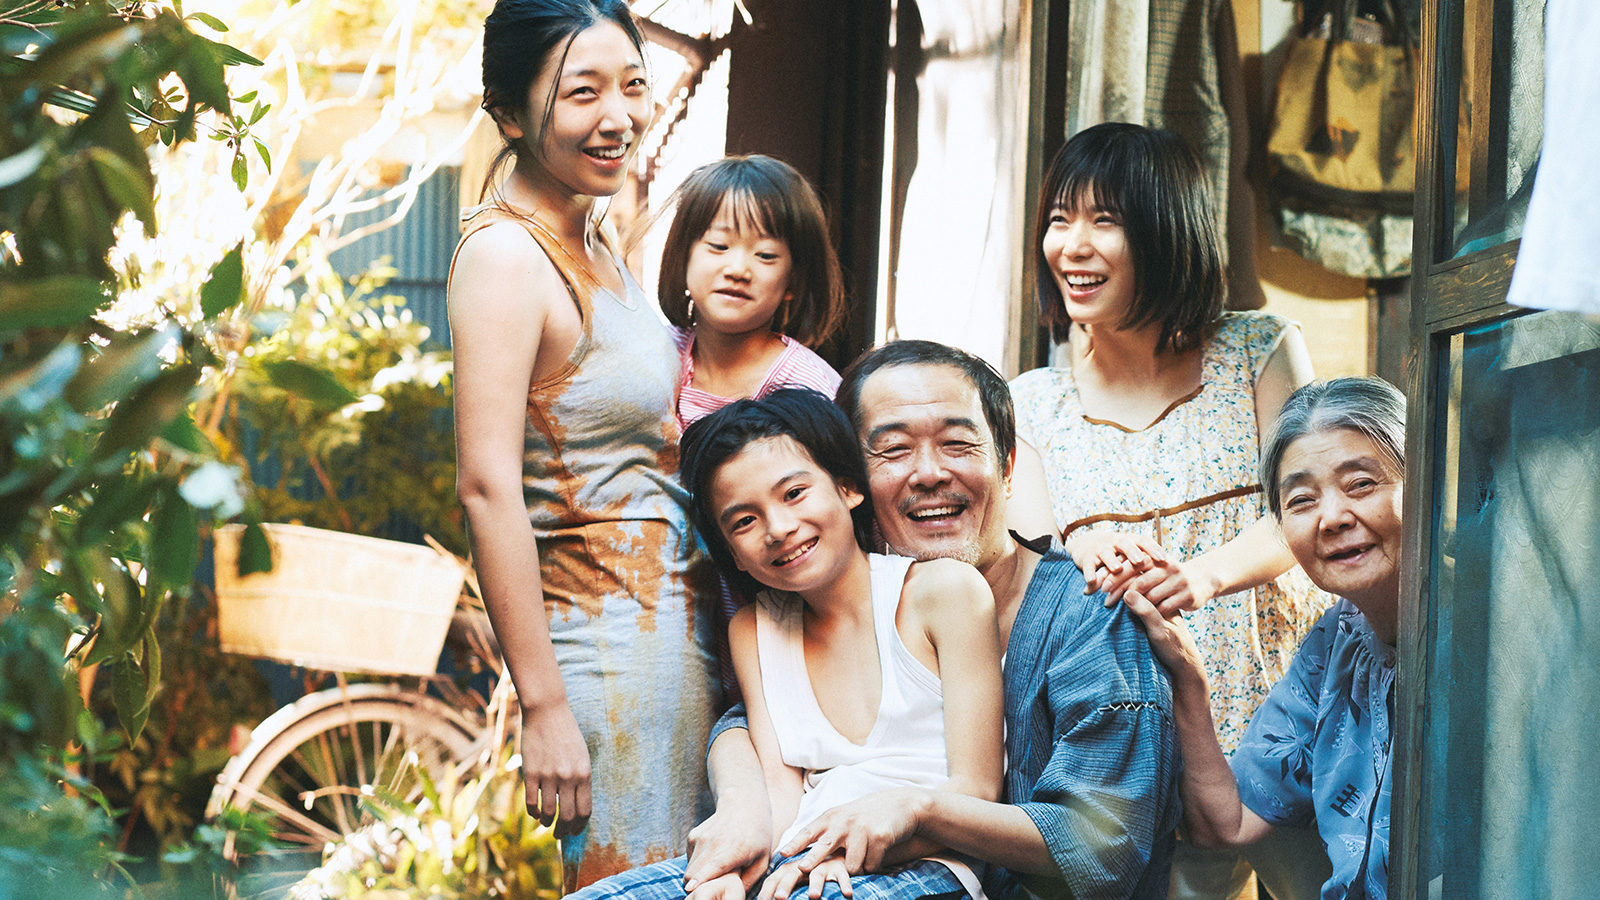 Shoplifters  is undoubtedly the one to see here